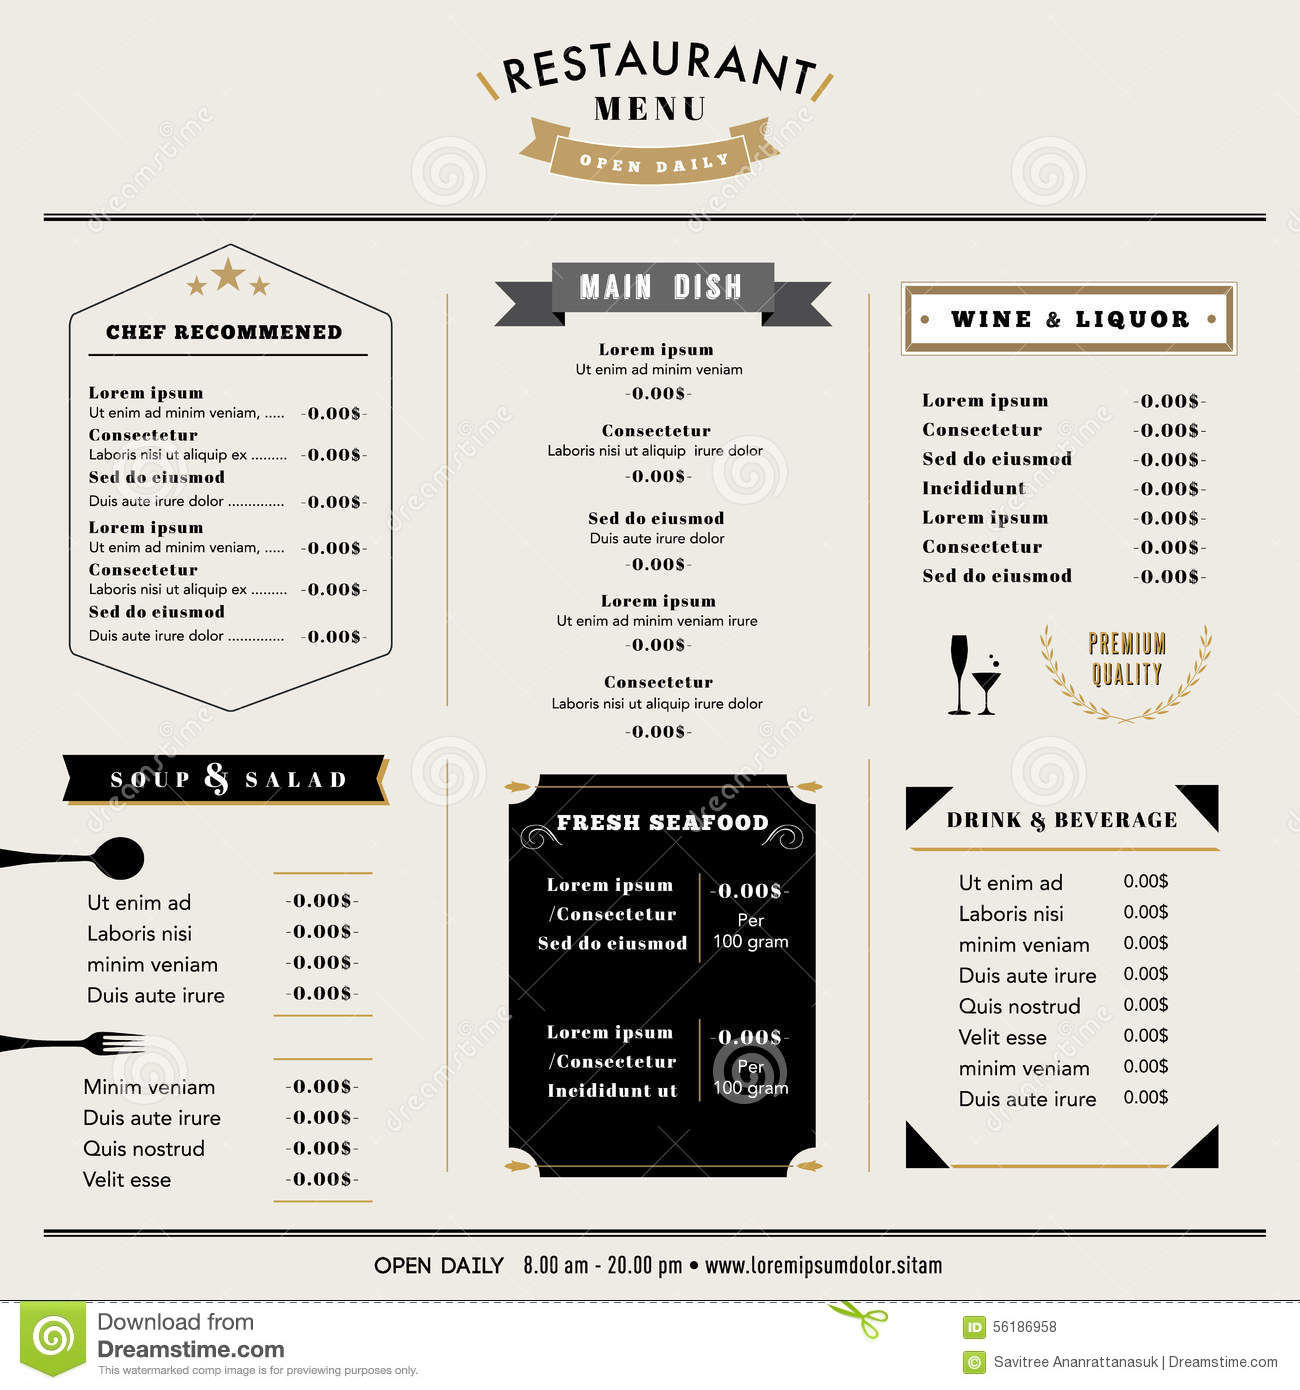 Restaurant Menu Design Template Layout With Icons And Emblem Stock ...